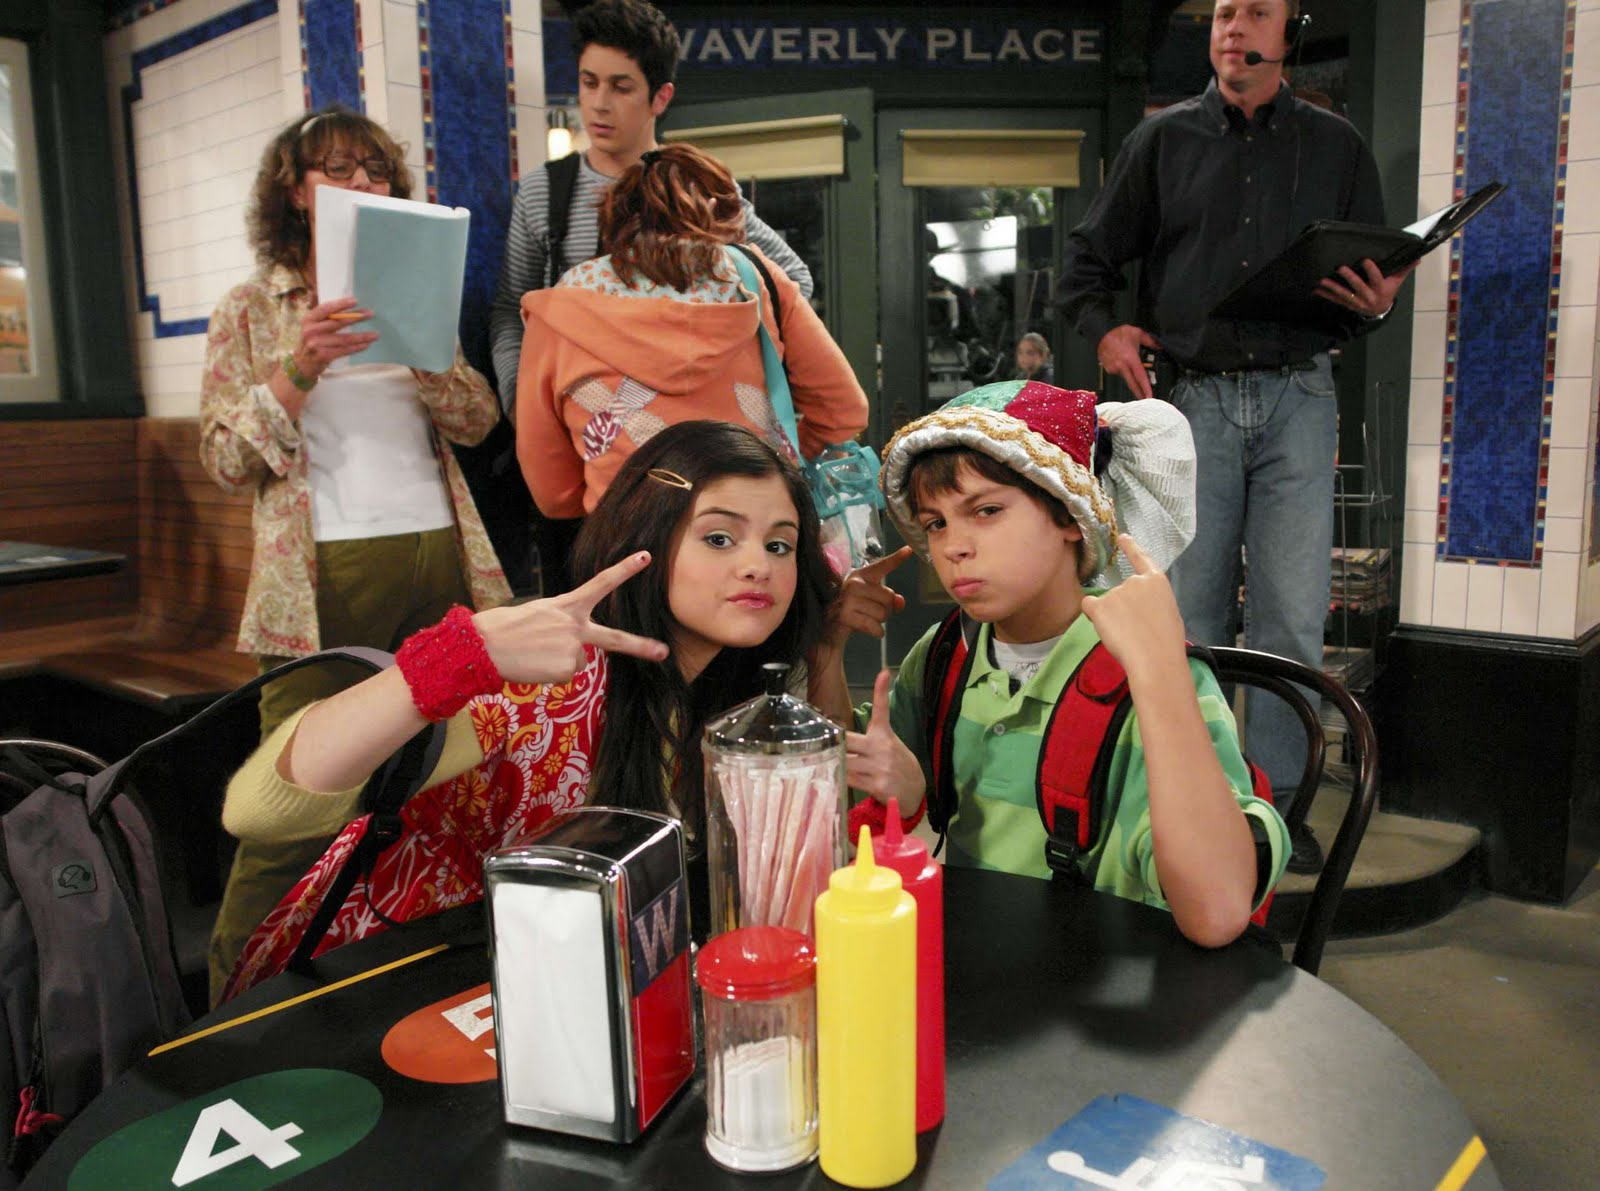 Wizards of waverly place wizards of waverly place seasons for The waverly